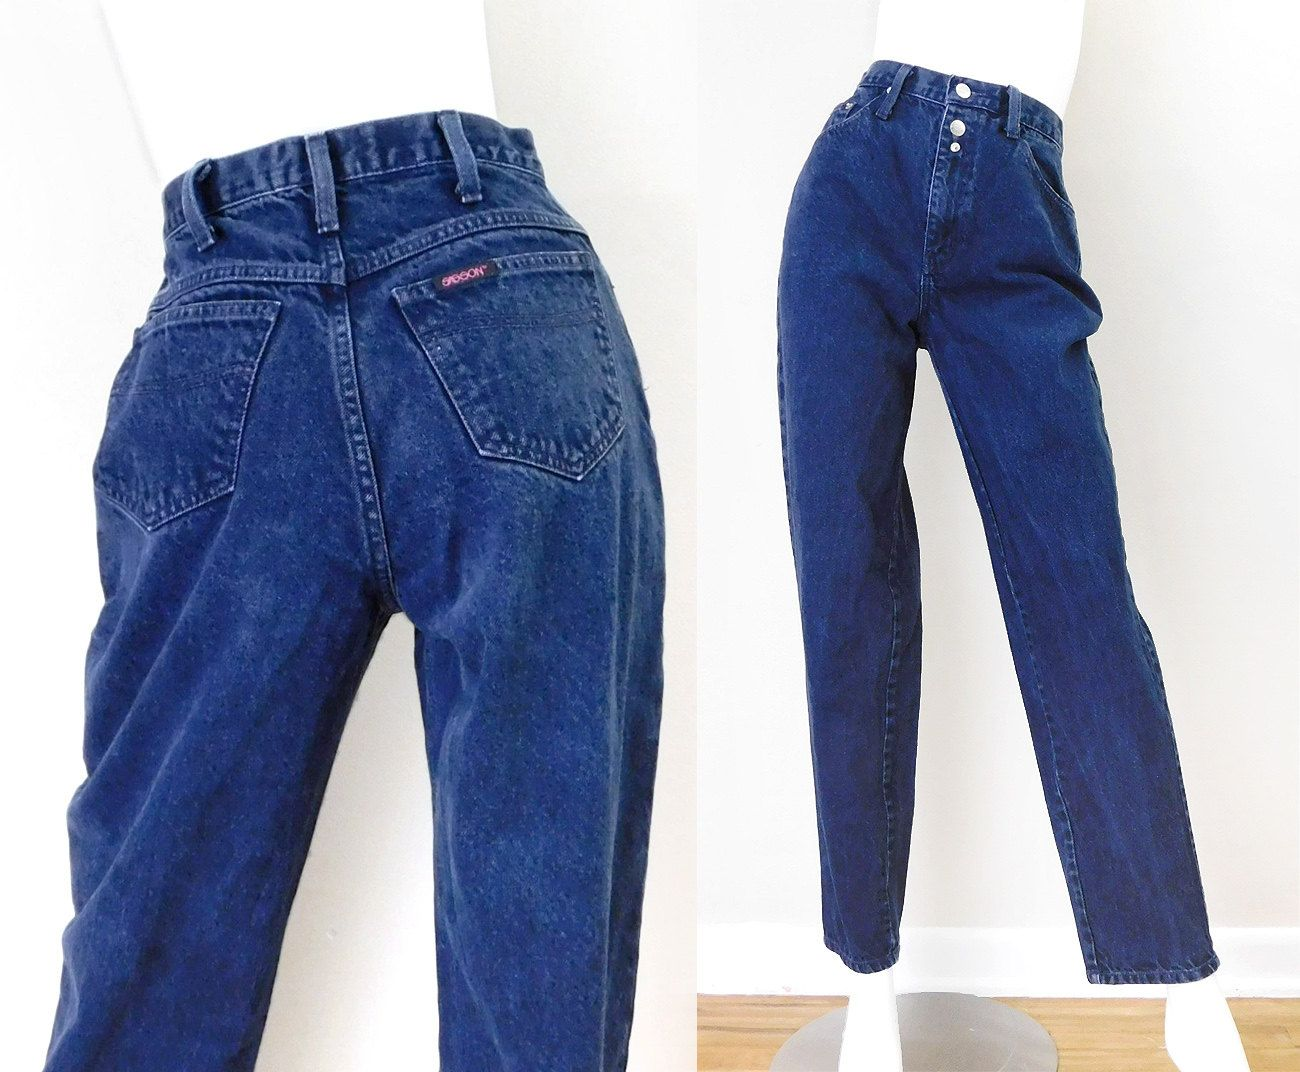 7ddf7f5b Sz 4-5 90s Sasson High Waisted Mom Jeans - Vintage Women's Baggy High Rise  Tapered Leg Stone Wash Dark Rinse Denim Jeans - 26 waist by  SadieBessVintage on ...